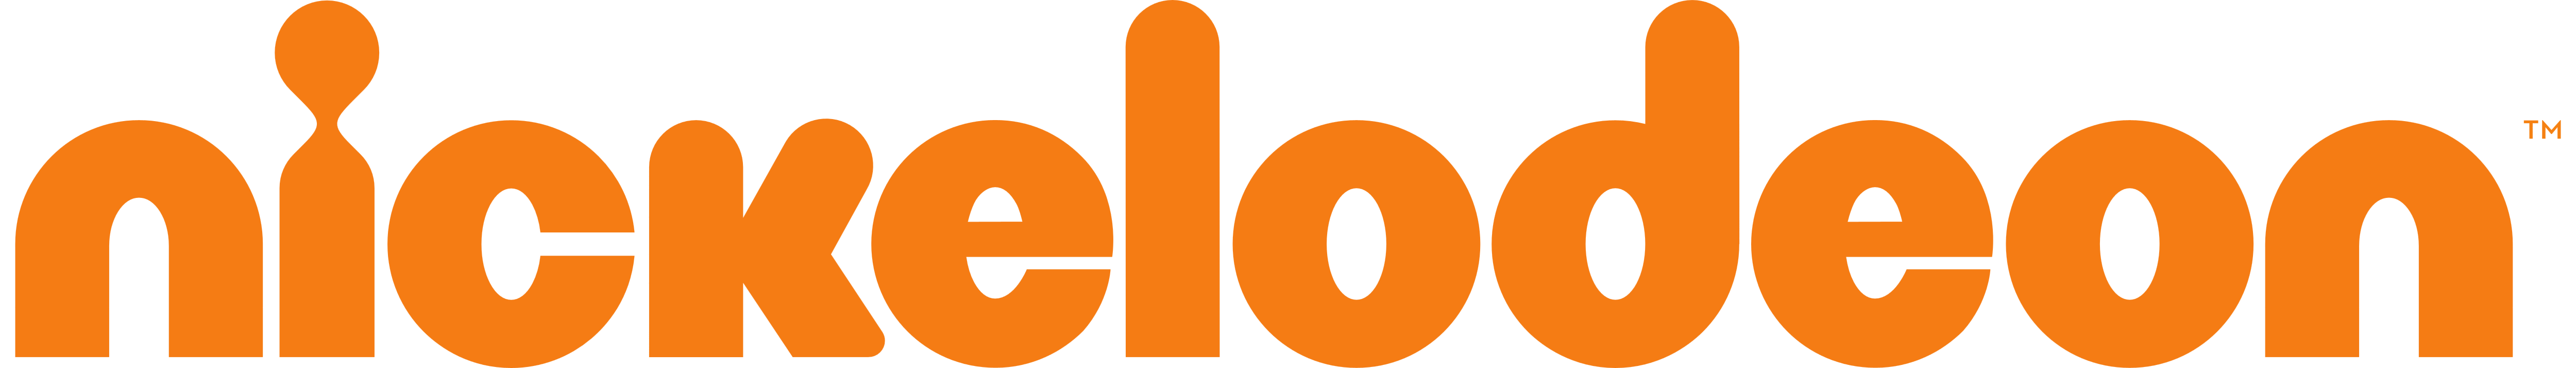 Nickelodeon Logos Download